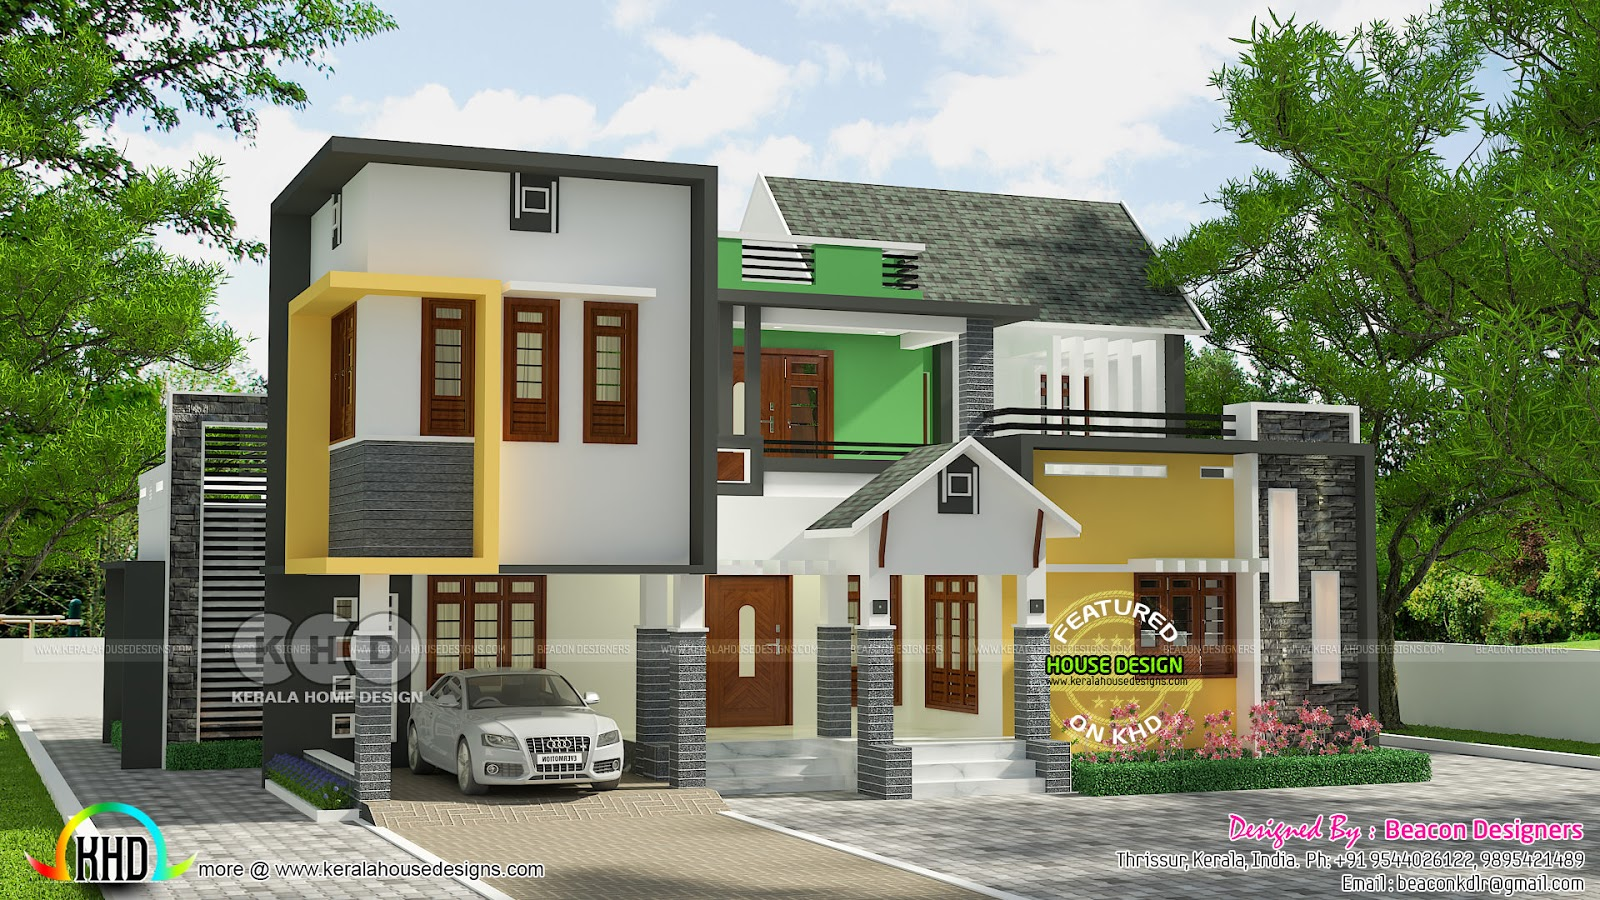 4 Bedroom Mixed Roof Home Part - 20: First Floor Area : 747 Sq. Ft. Total Area : 2274 Sq. Ft. No. Of Bedrooms : 4.  No. Bathrooms : 4. No. Of Floors : 2. Design Style : Mix Roof